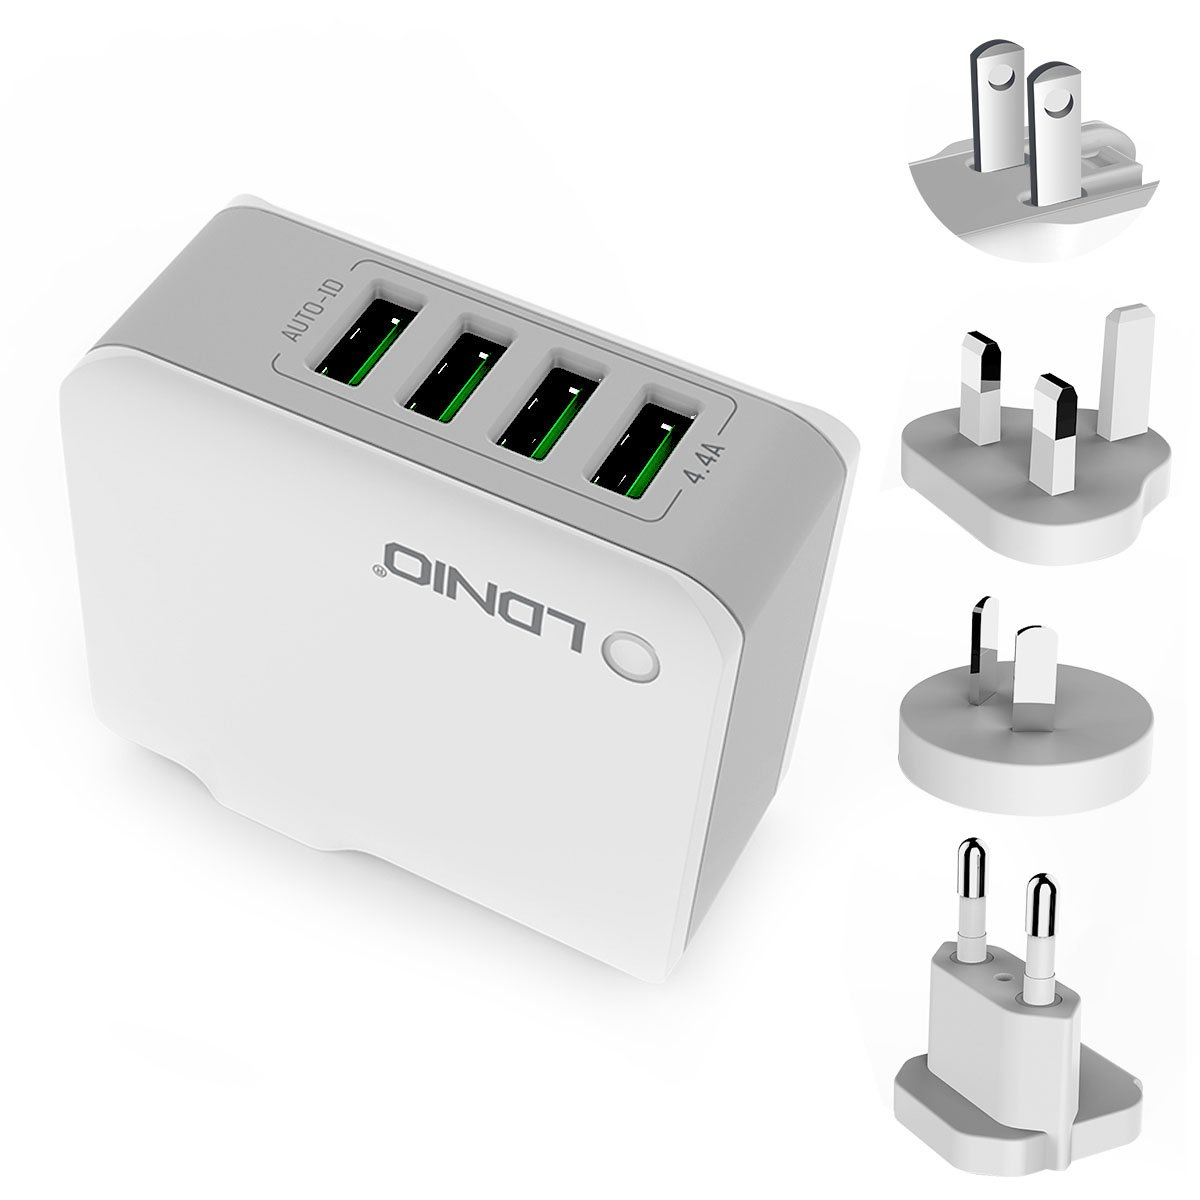 ORIA Travel Charger, 4 USB Plug Charger, 4.4A Travel Charger Adapter, 22W Wall Charger with UK/AU/EU Plugs, for iPhone X, 8, 8 Plus, 7, 7 Plus, iPad Air, Mini 4, Samsung Galaxy S8, Note 8, Tablet